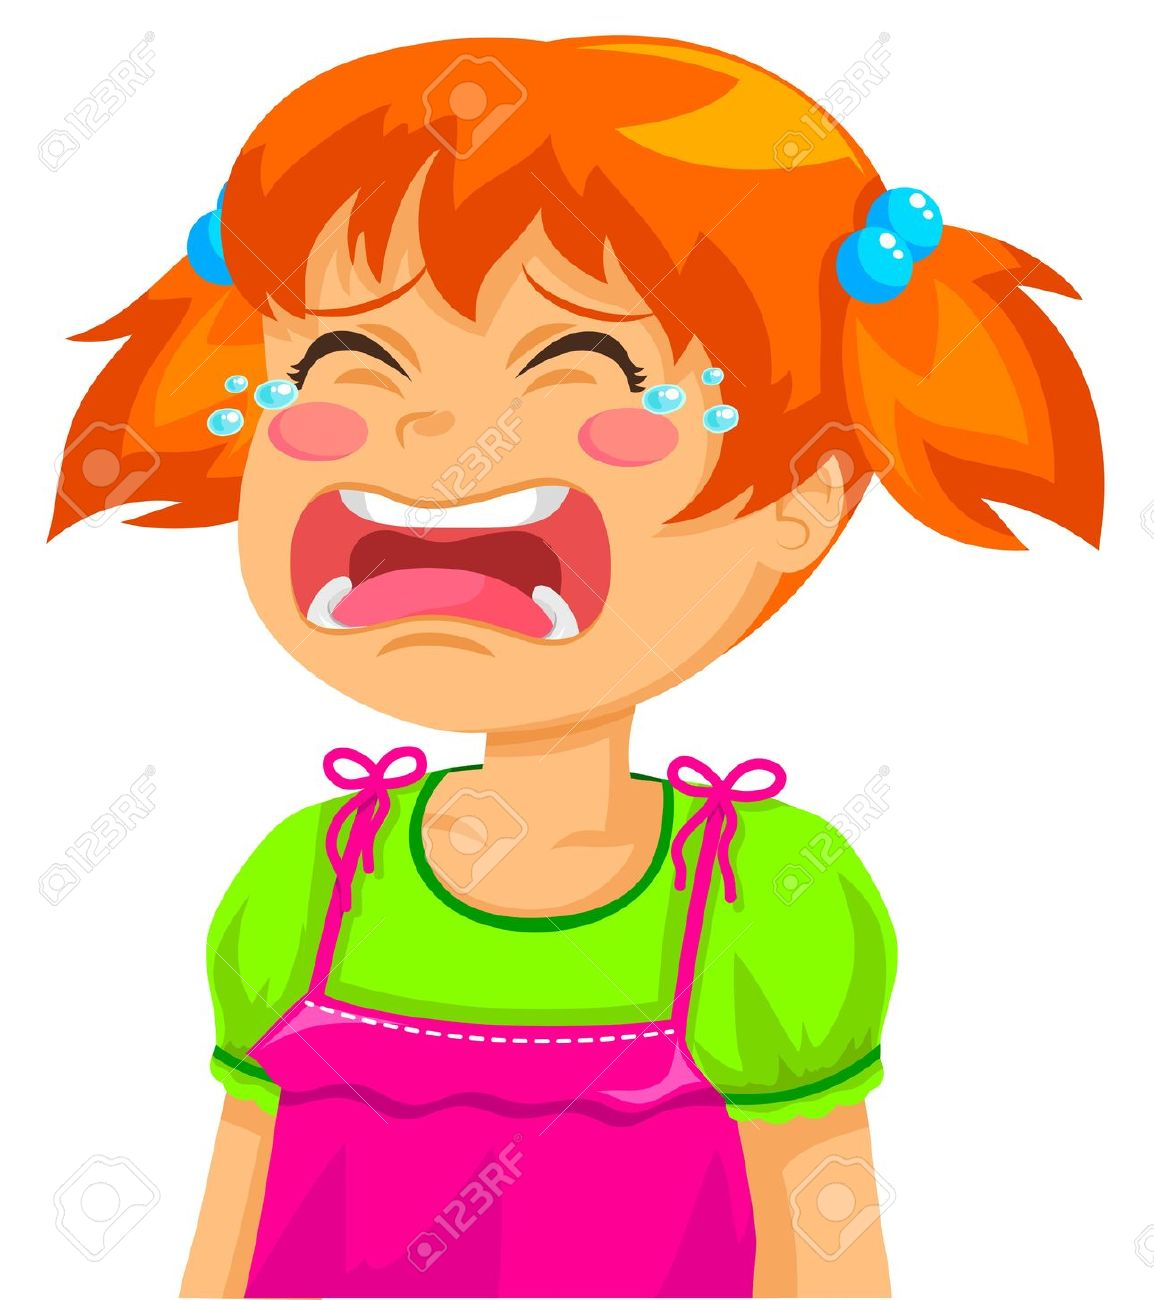 . hdclipartall.com Crying Clipart 08 hdclipartall.com